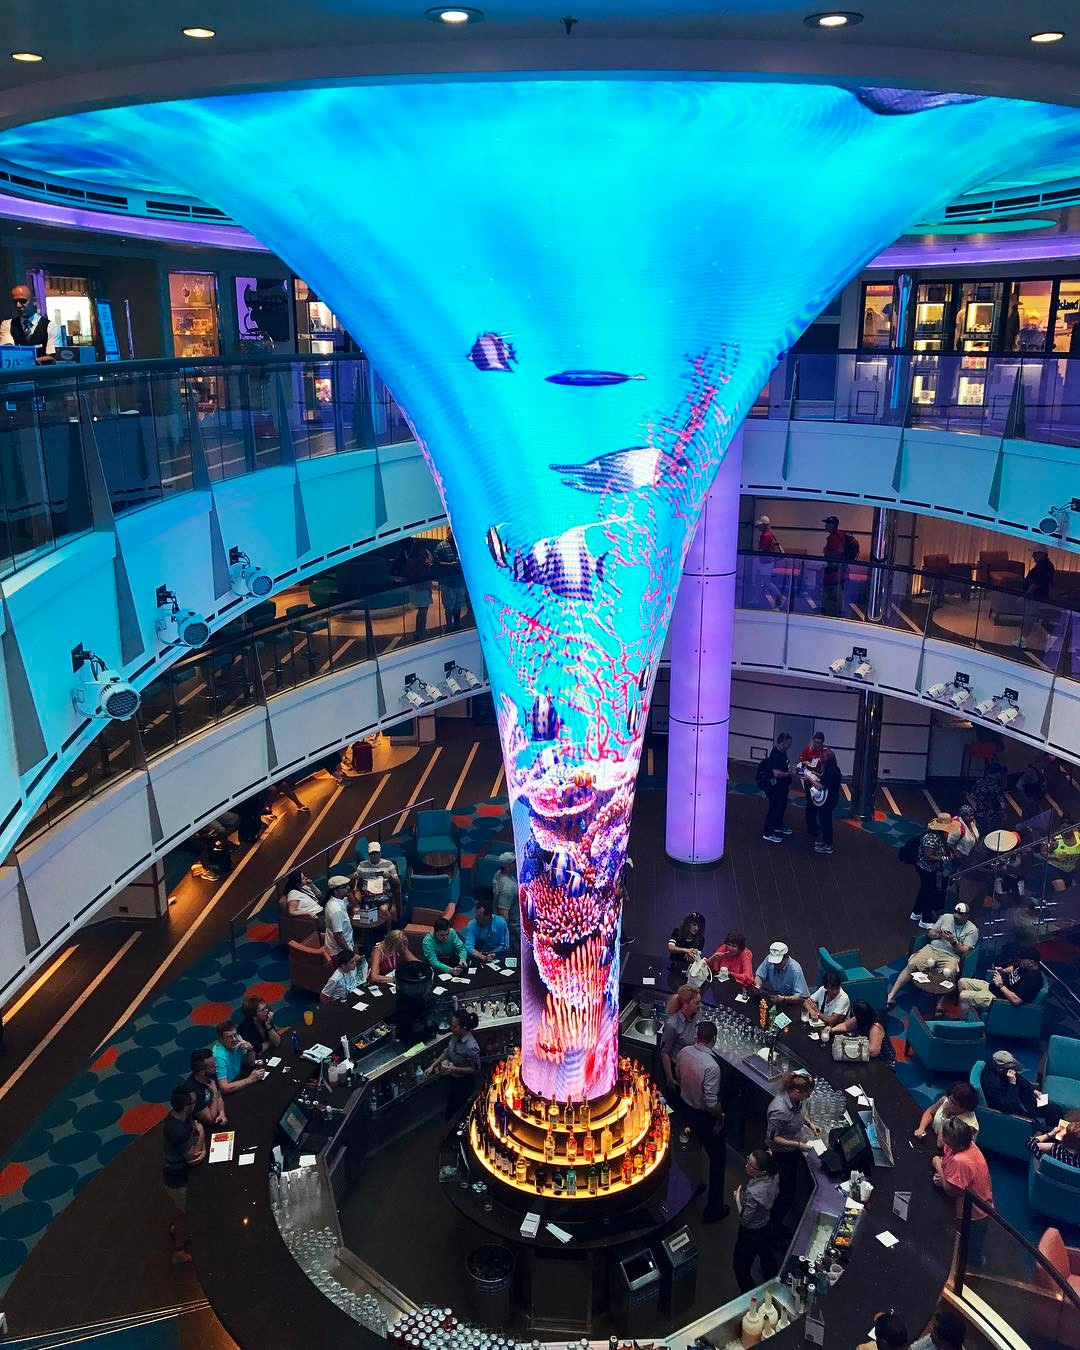 cruise ships pictures @captain_palme